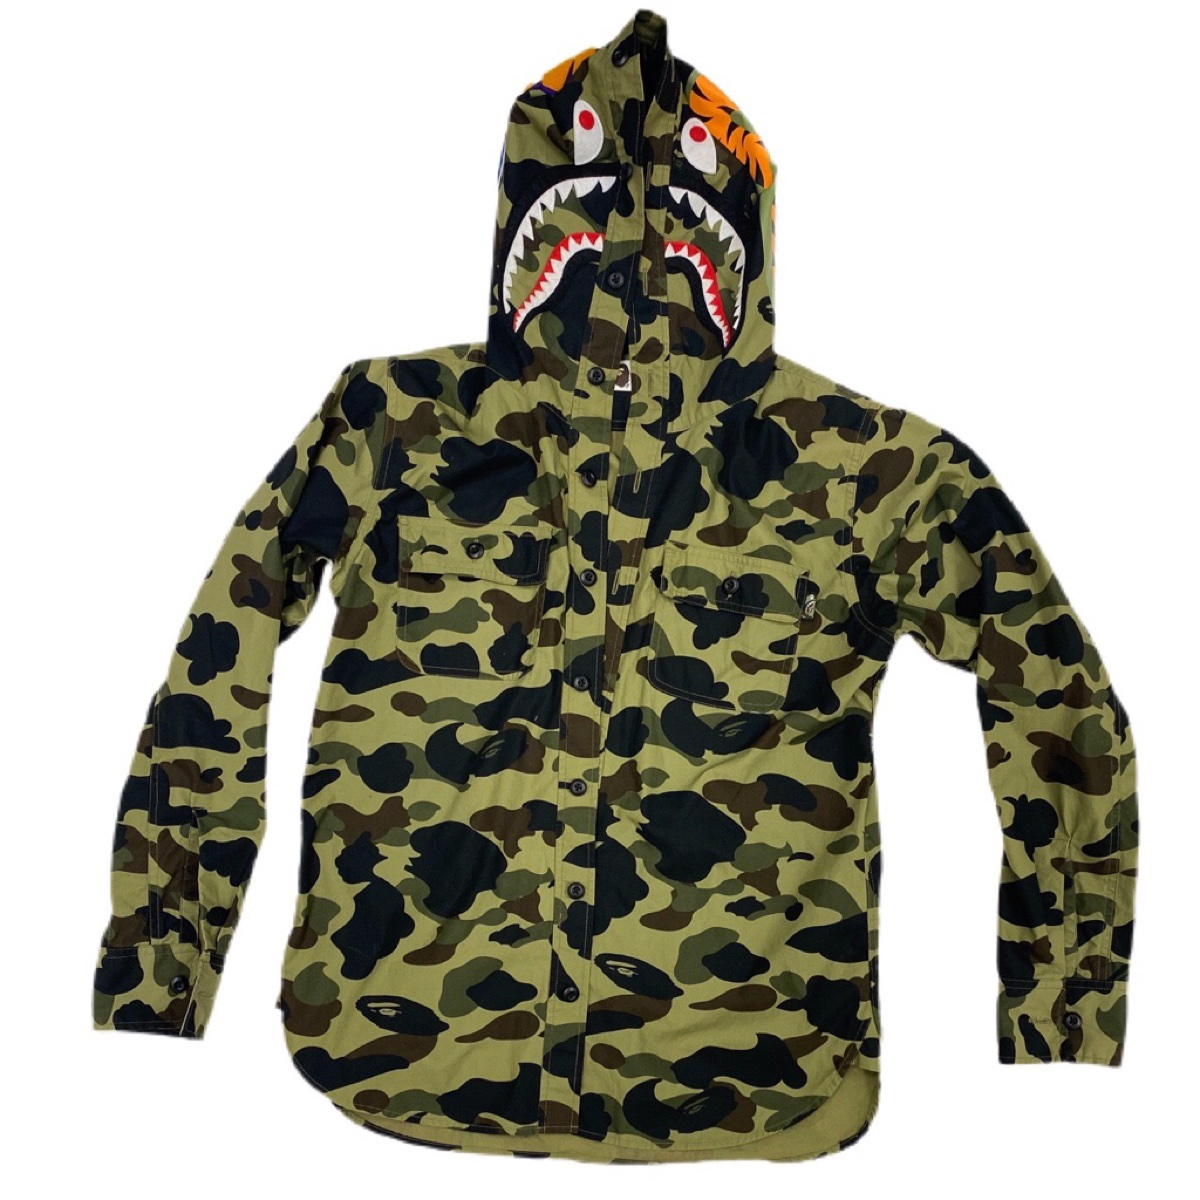 Bape shark green camo overshirt jacket